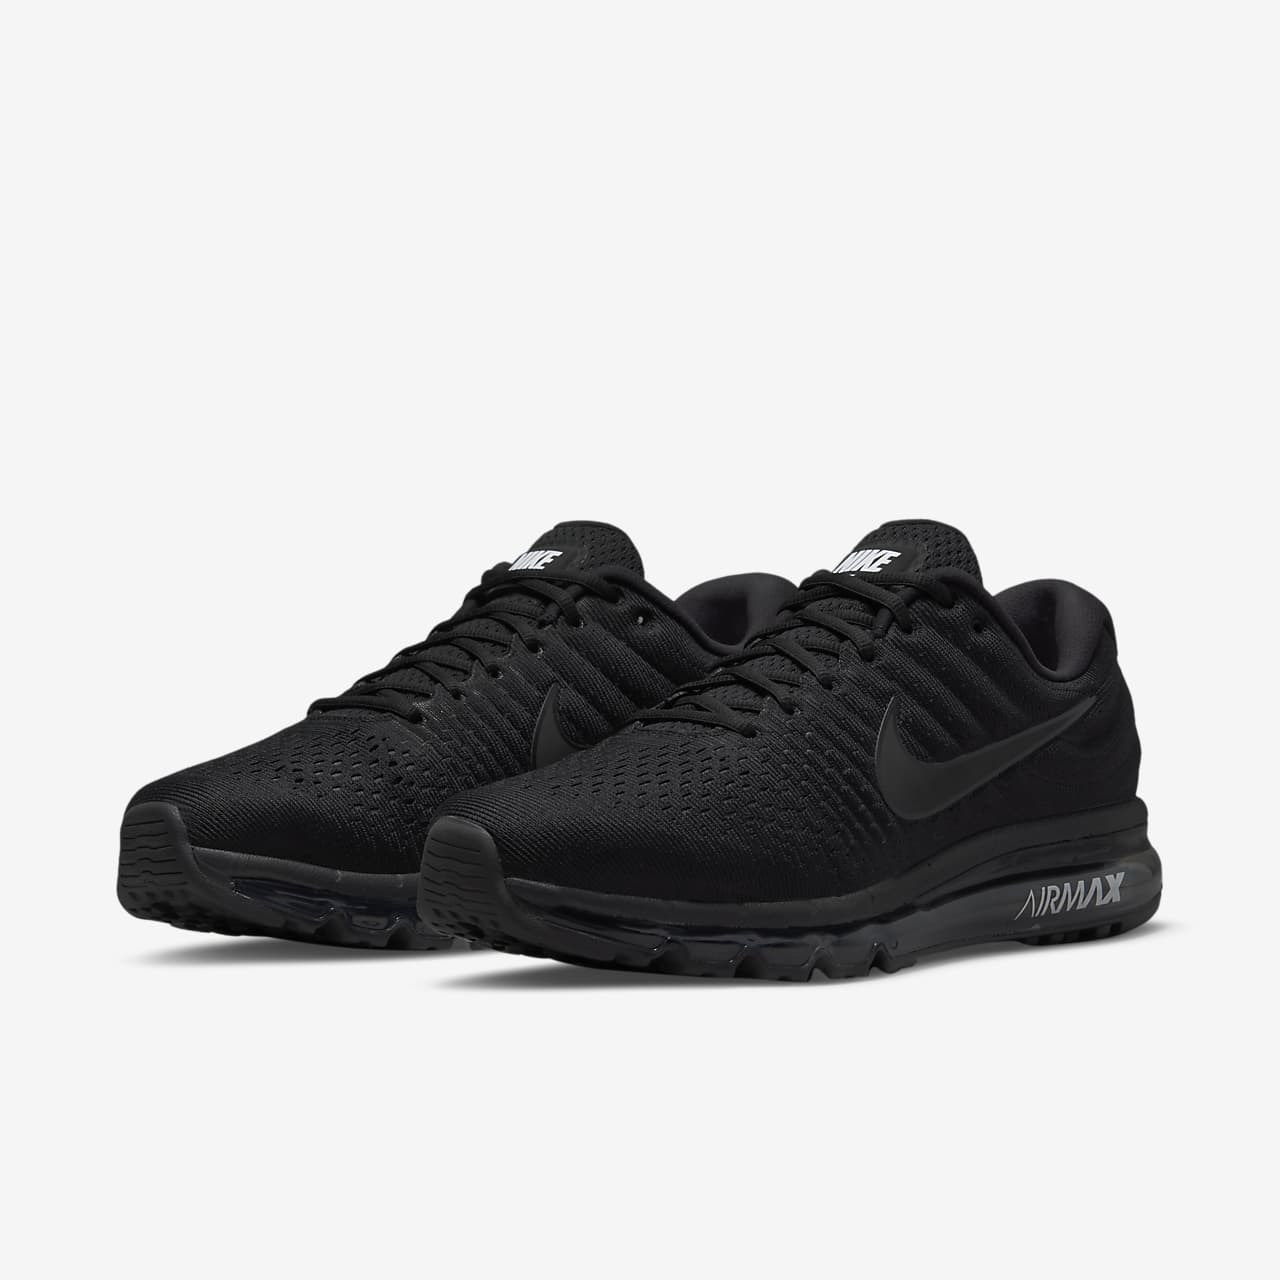 outlet store 5d570 b8caa ... Chaussure Nike Air Max 2017 pour Homme